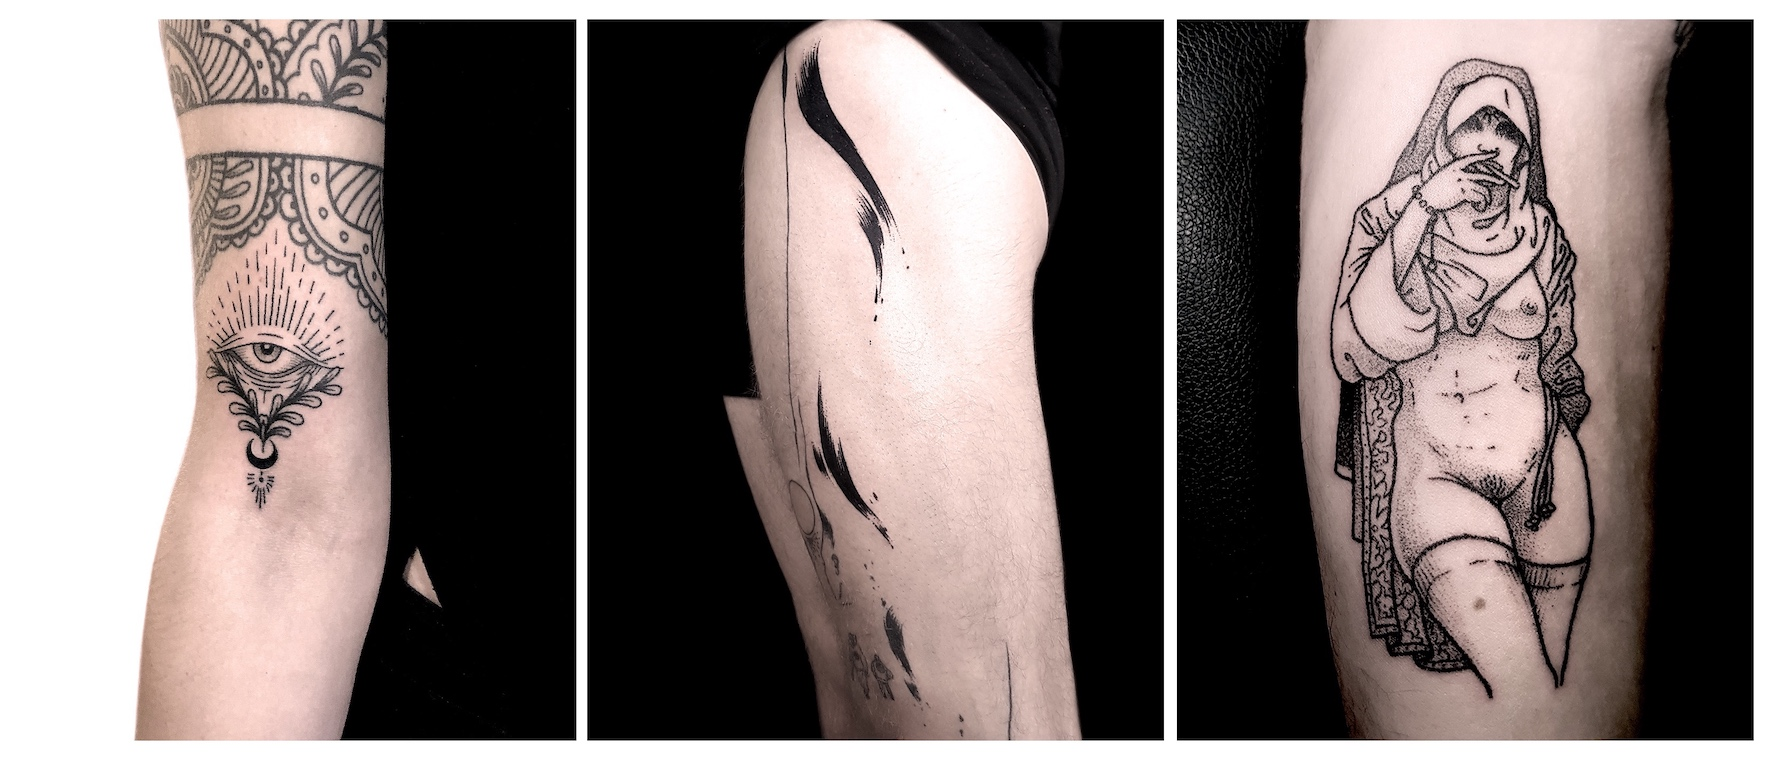 A selection of tattoos done by Bryce Louw, aka Max Eru